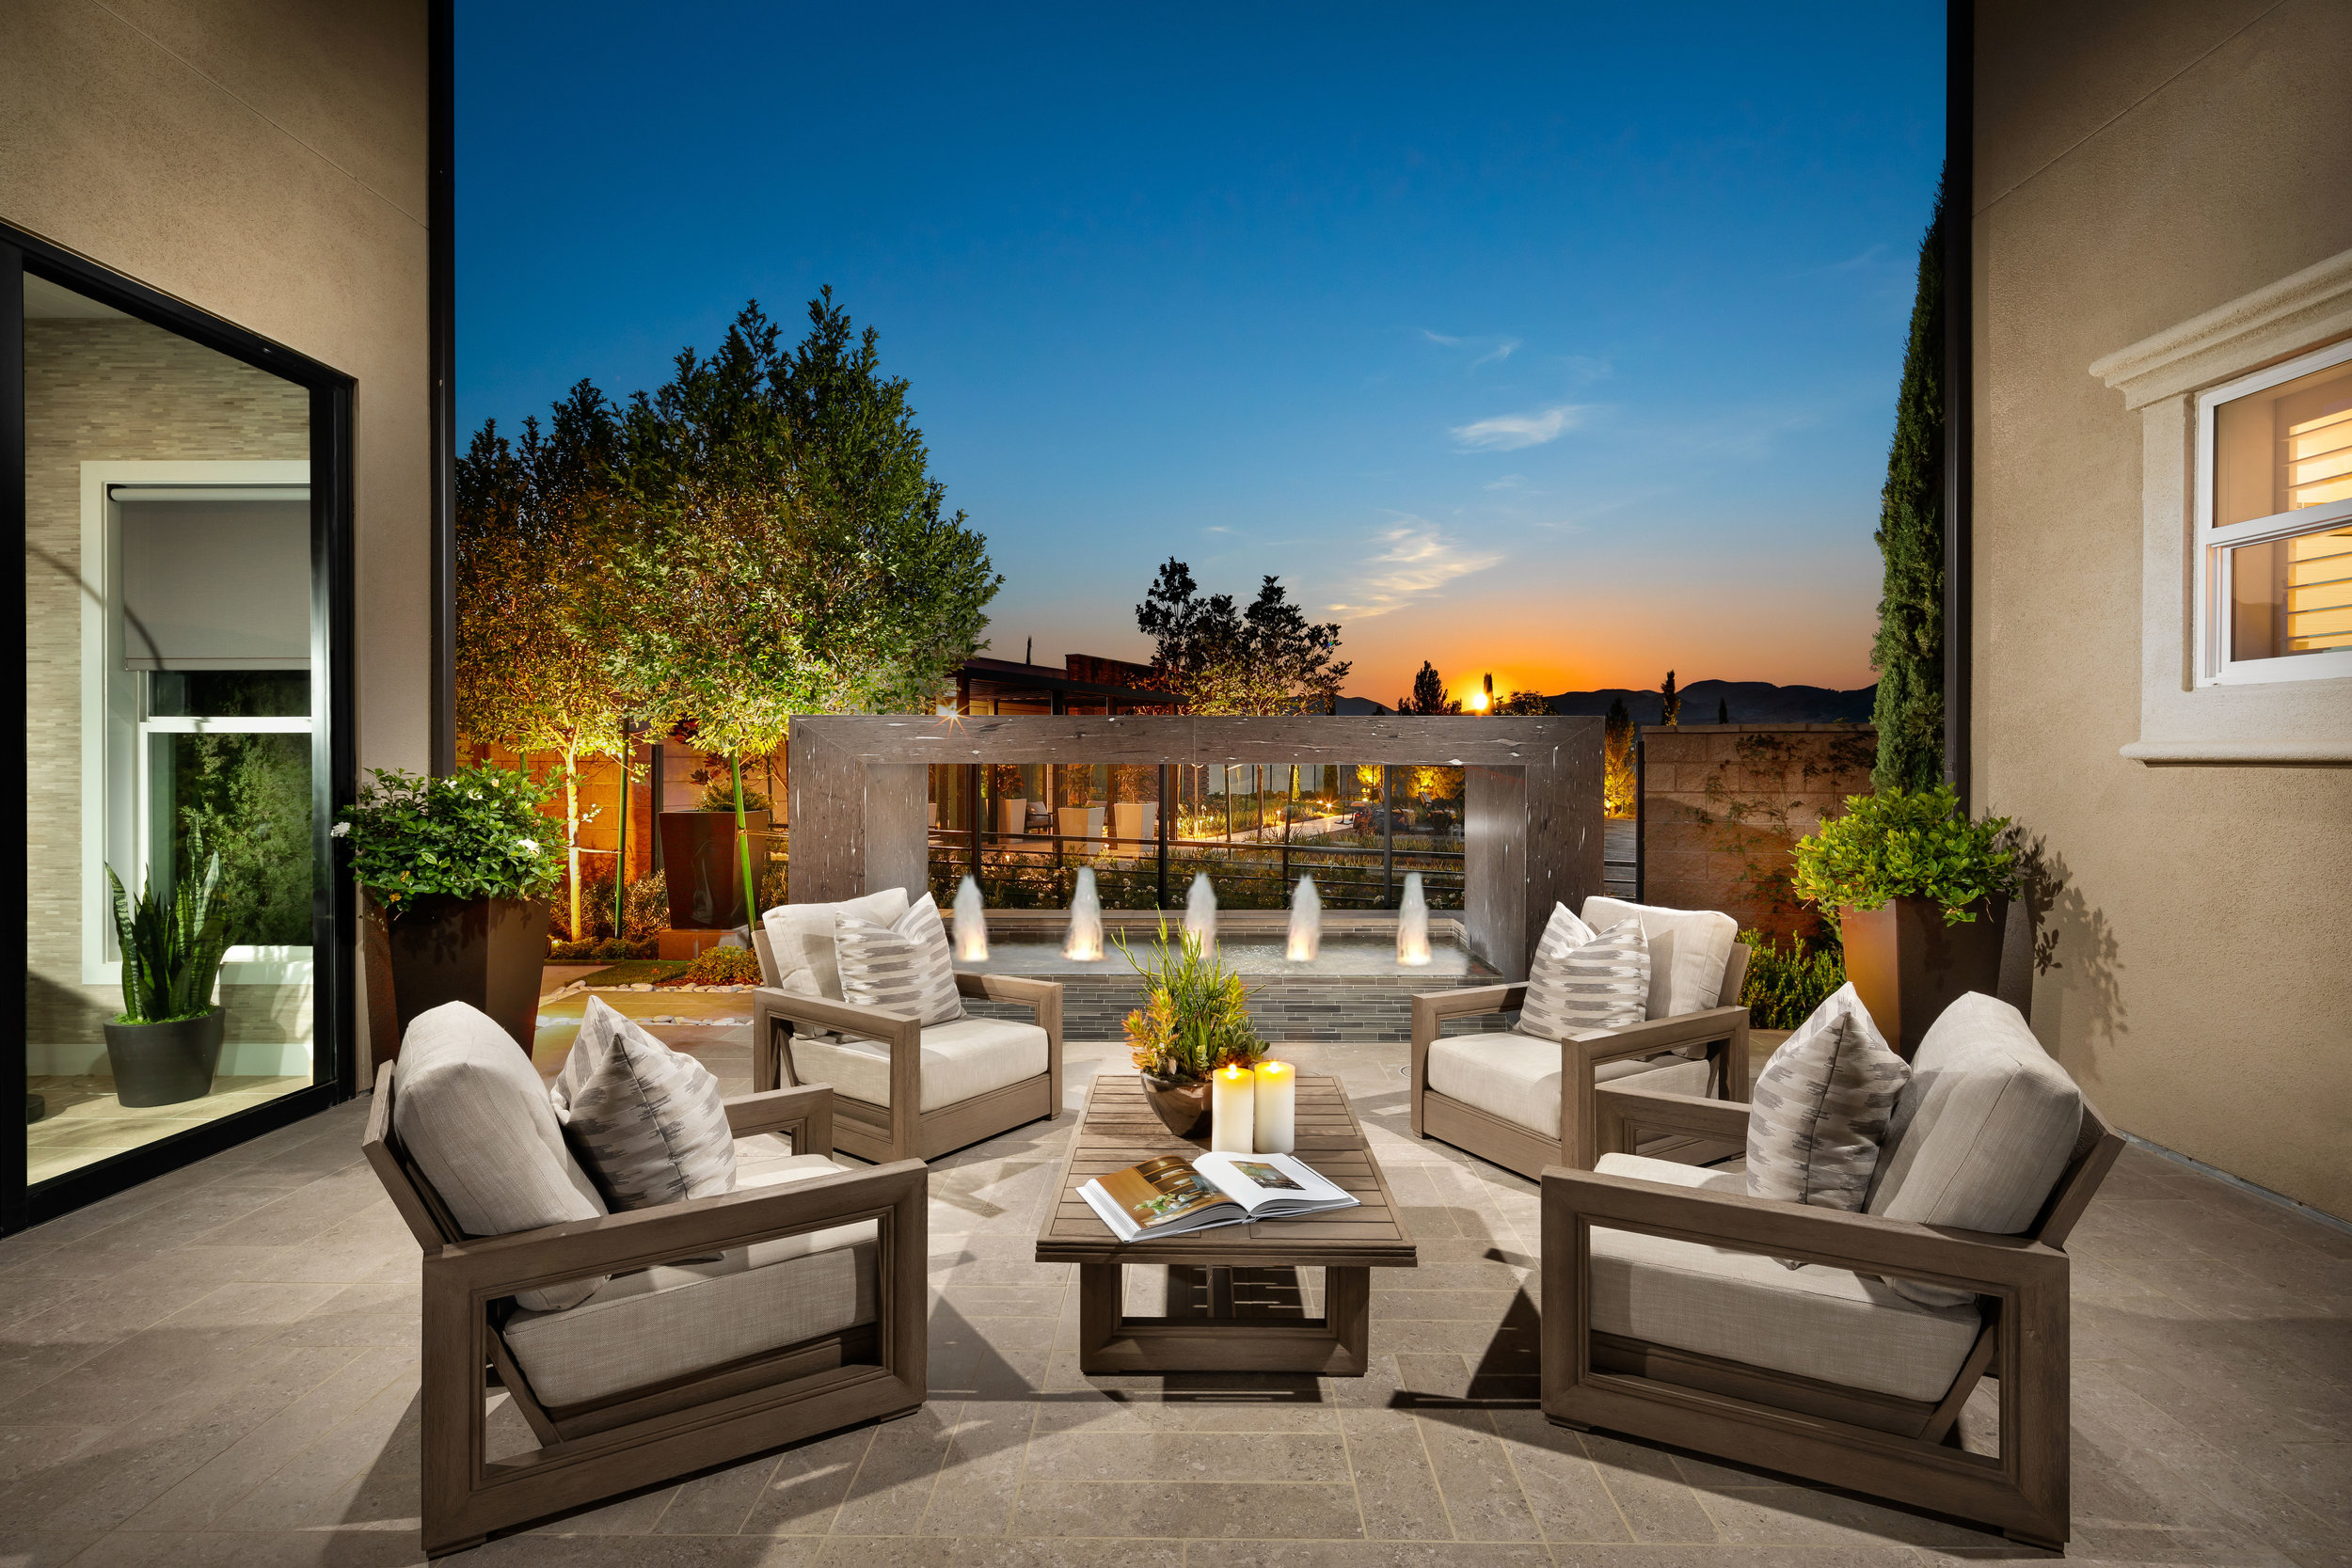 04-Beacon-Langham-Best Outdoor Living Space_FIXa.jpg